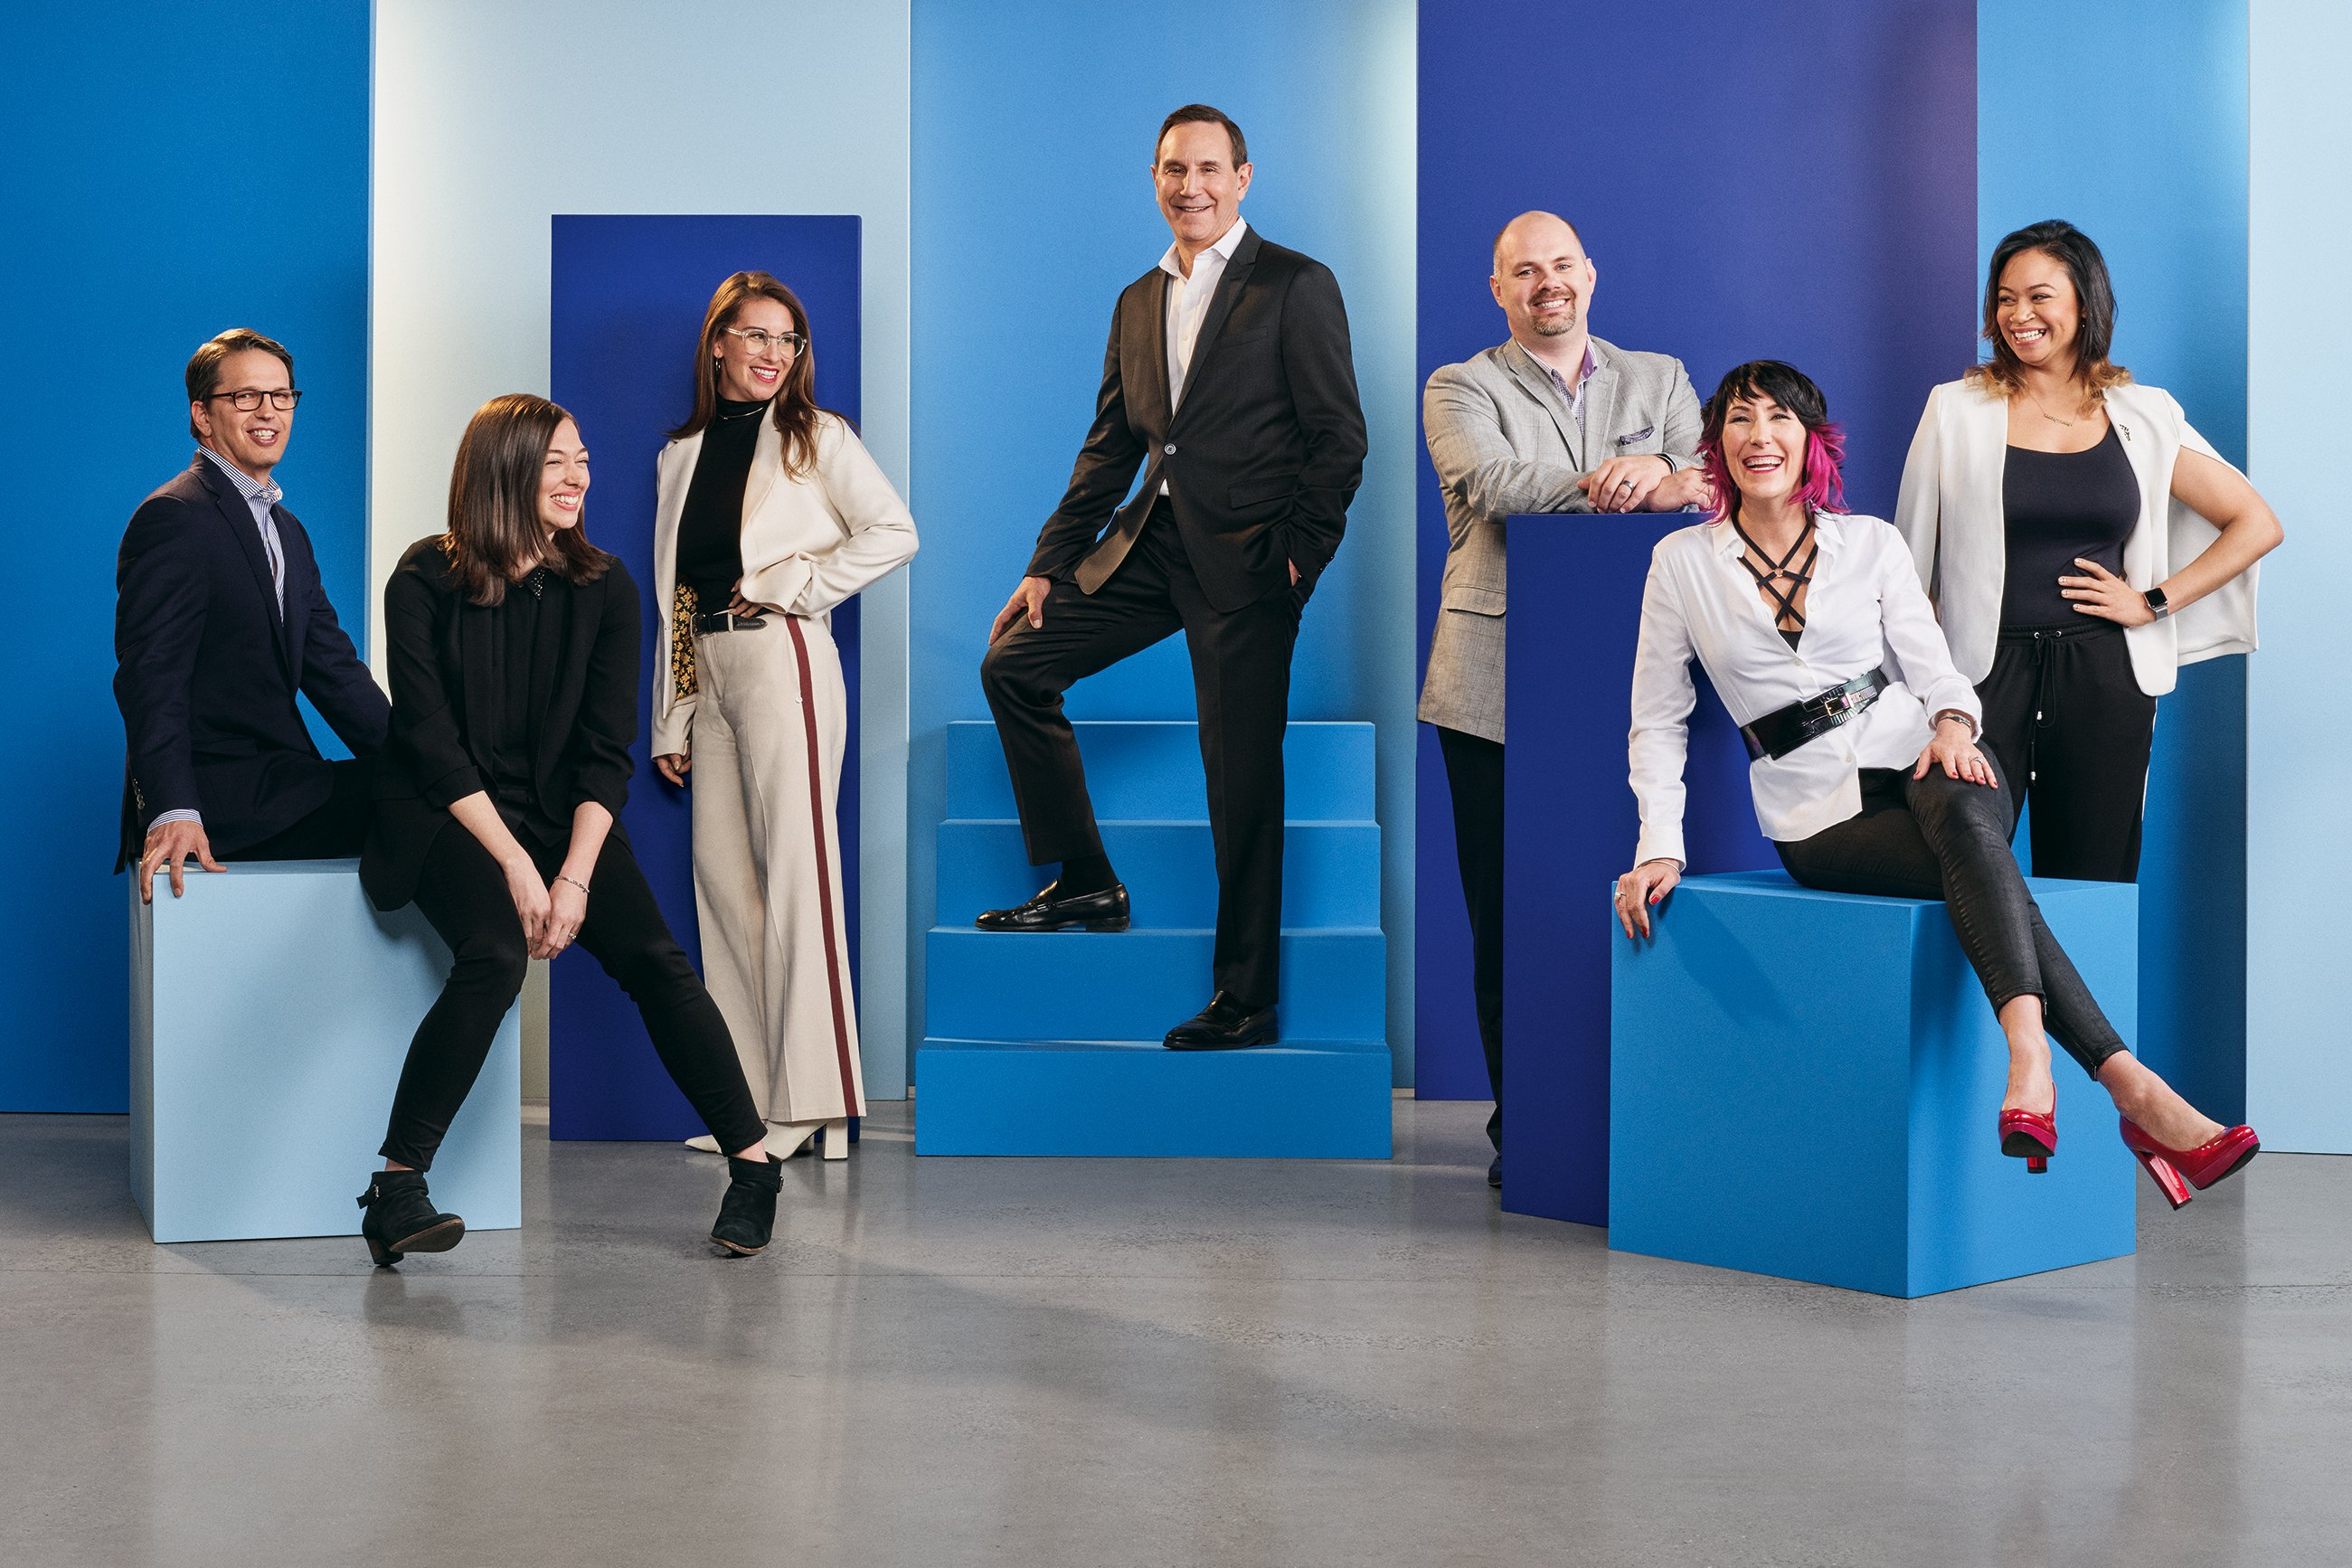 Edelman leadership group photo